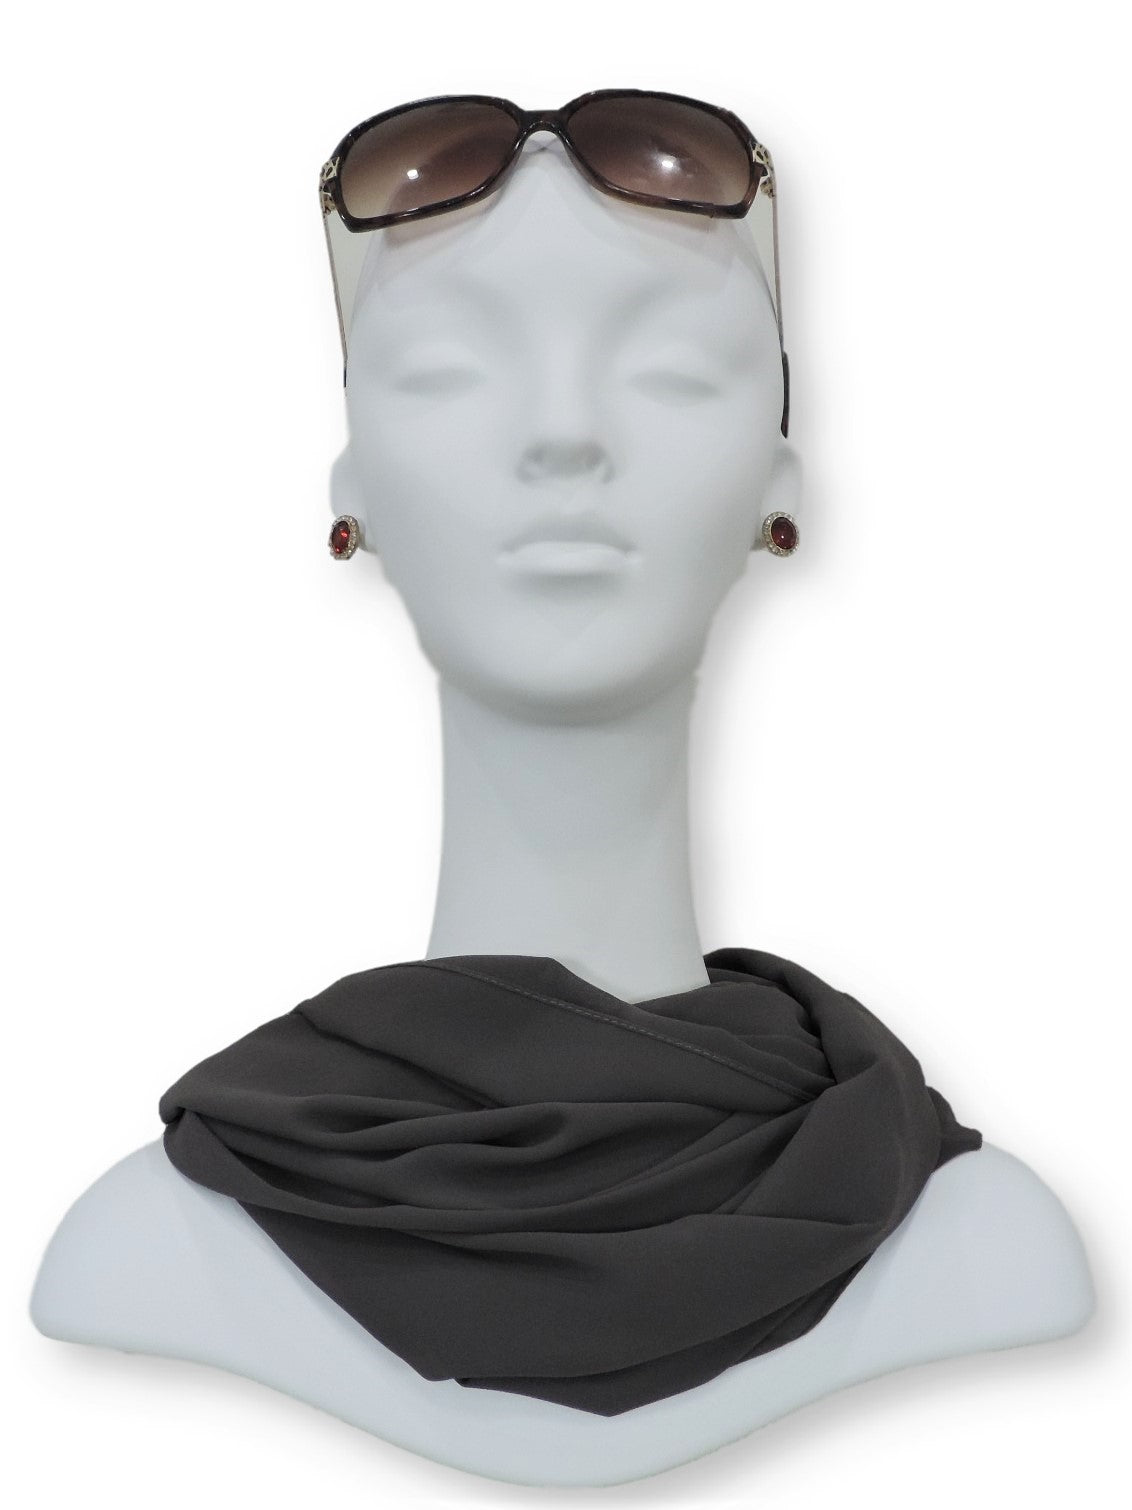 Charcoal Grey Chiffon Scarf - Global Trendz Fashion®